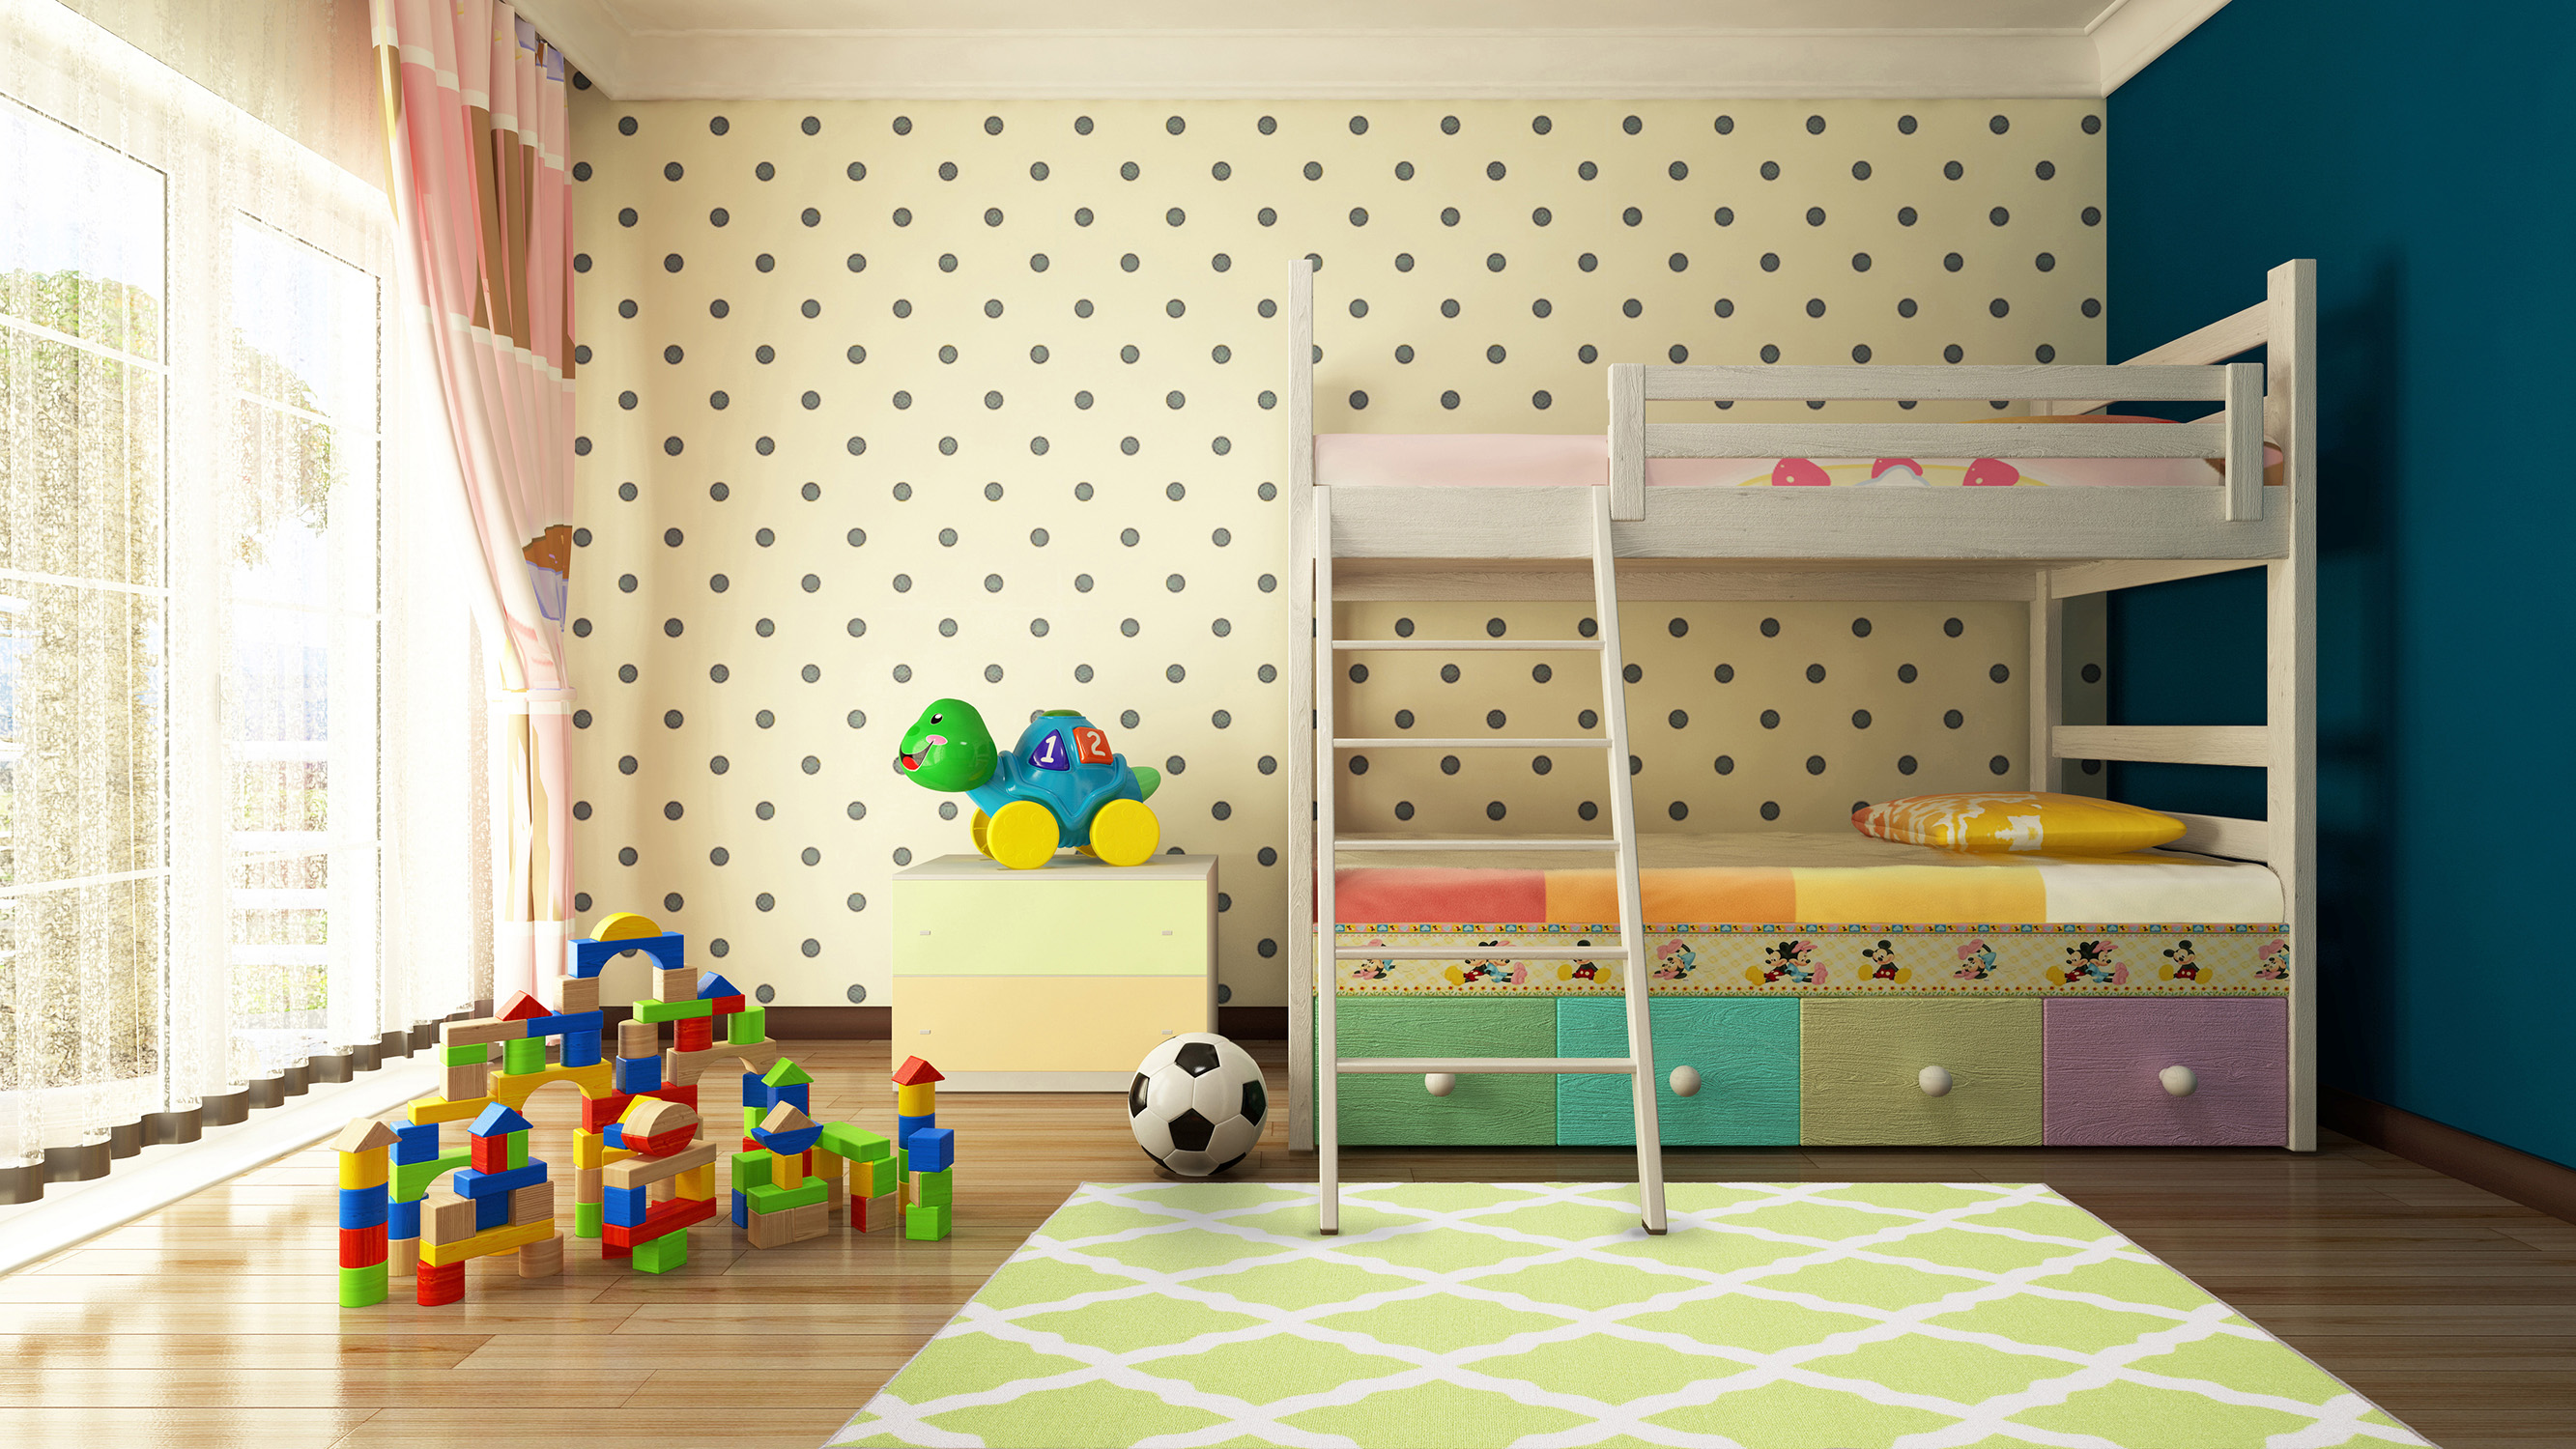 Rugs for kid's rooms - green rug rugs Rugs for kid's rooms Rugs for kids rooms green rug